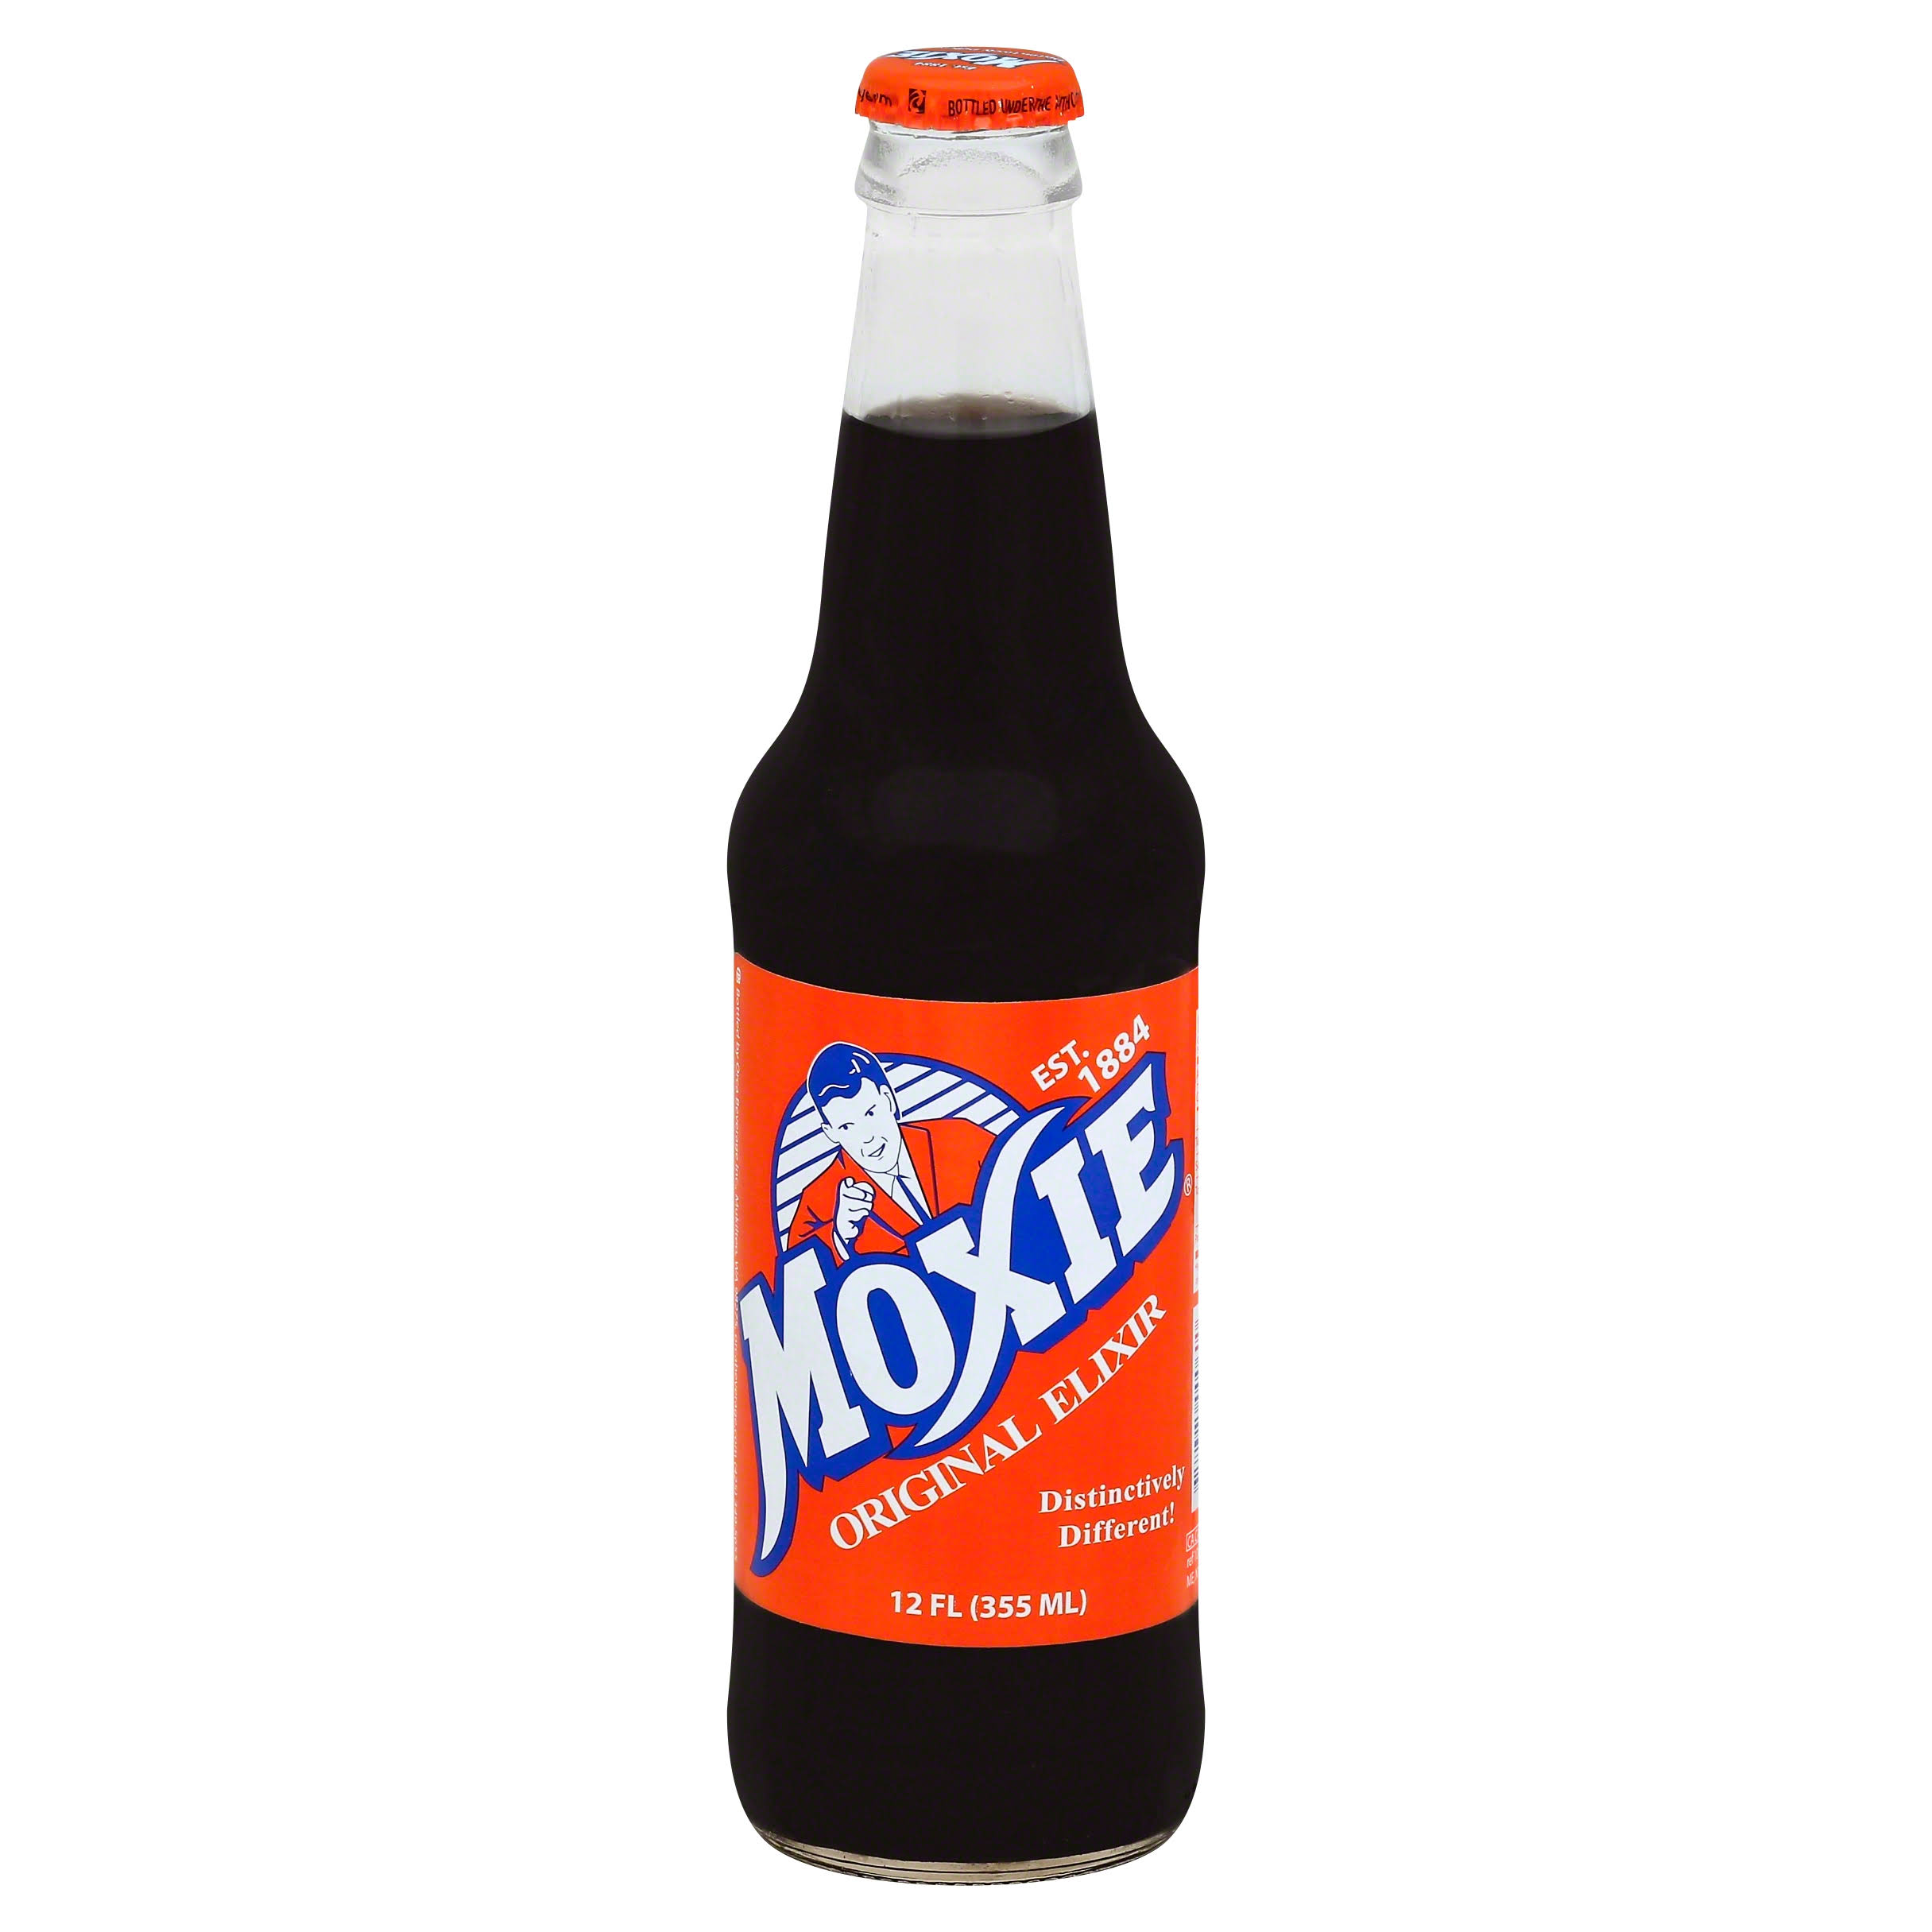 Moxie Original Elixir Soda - 12 fl oz bottle